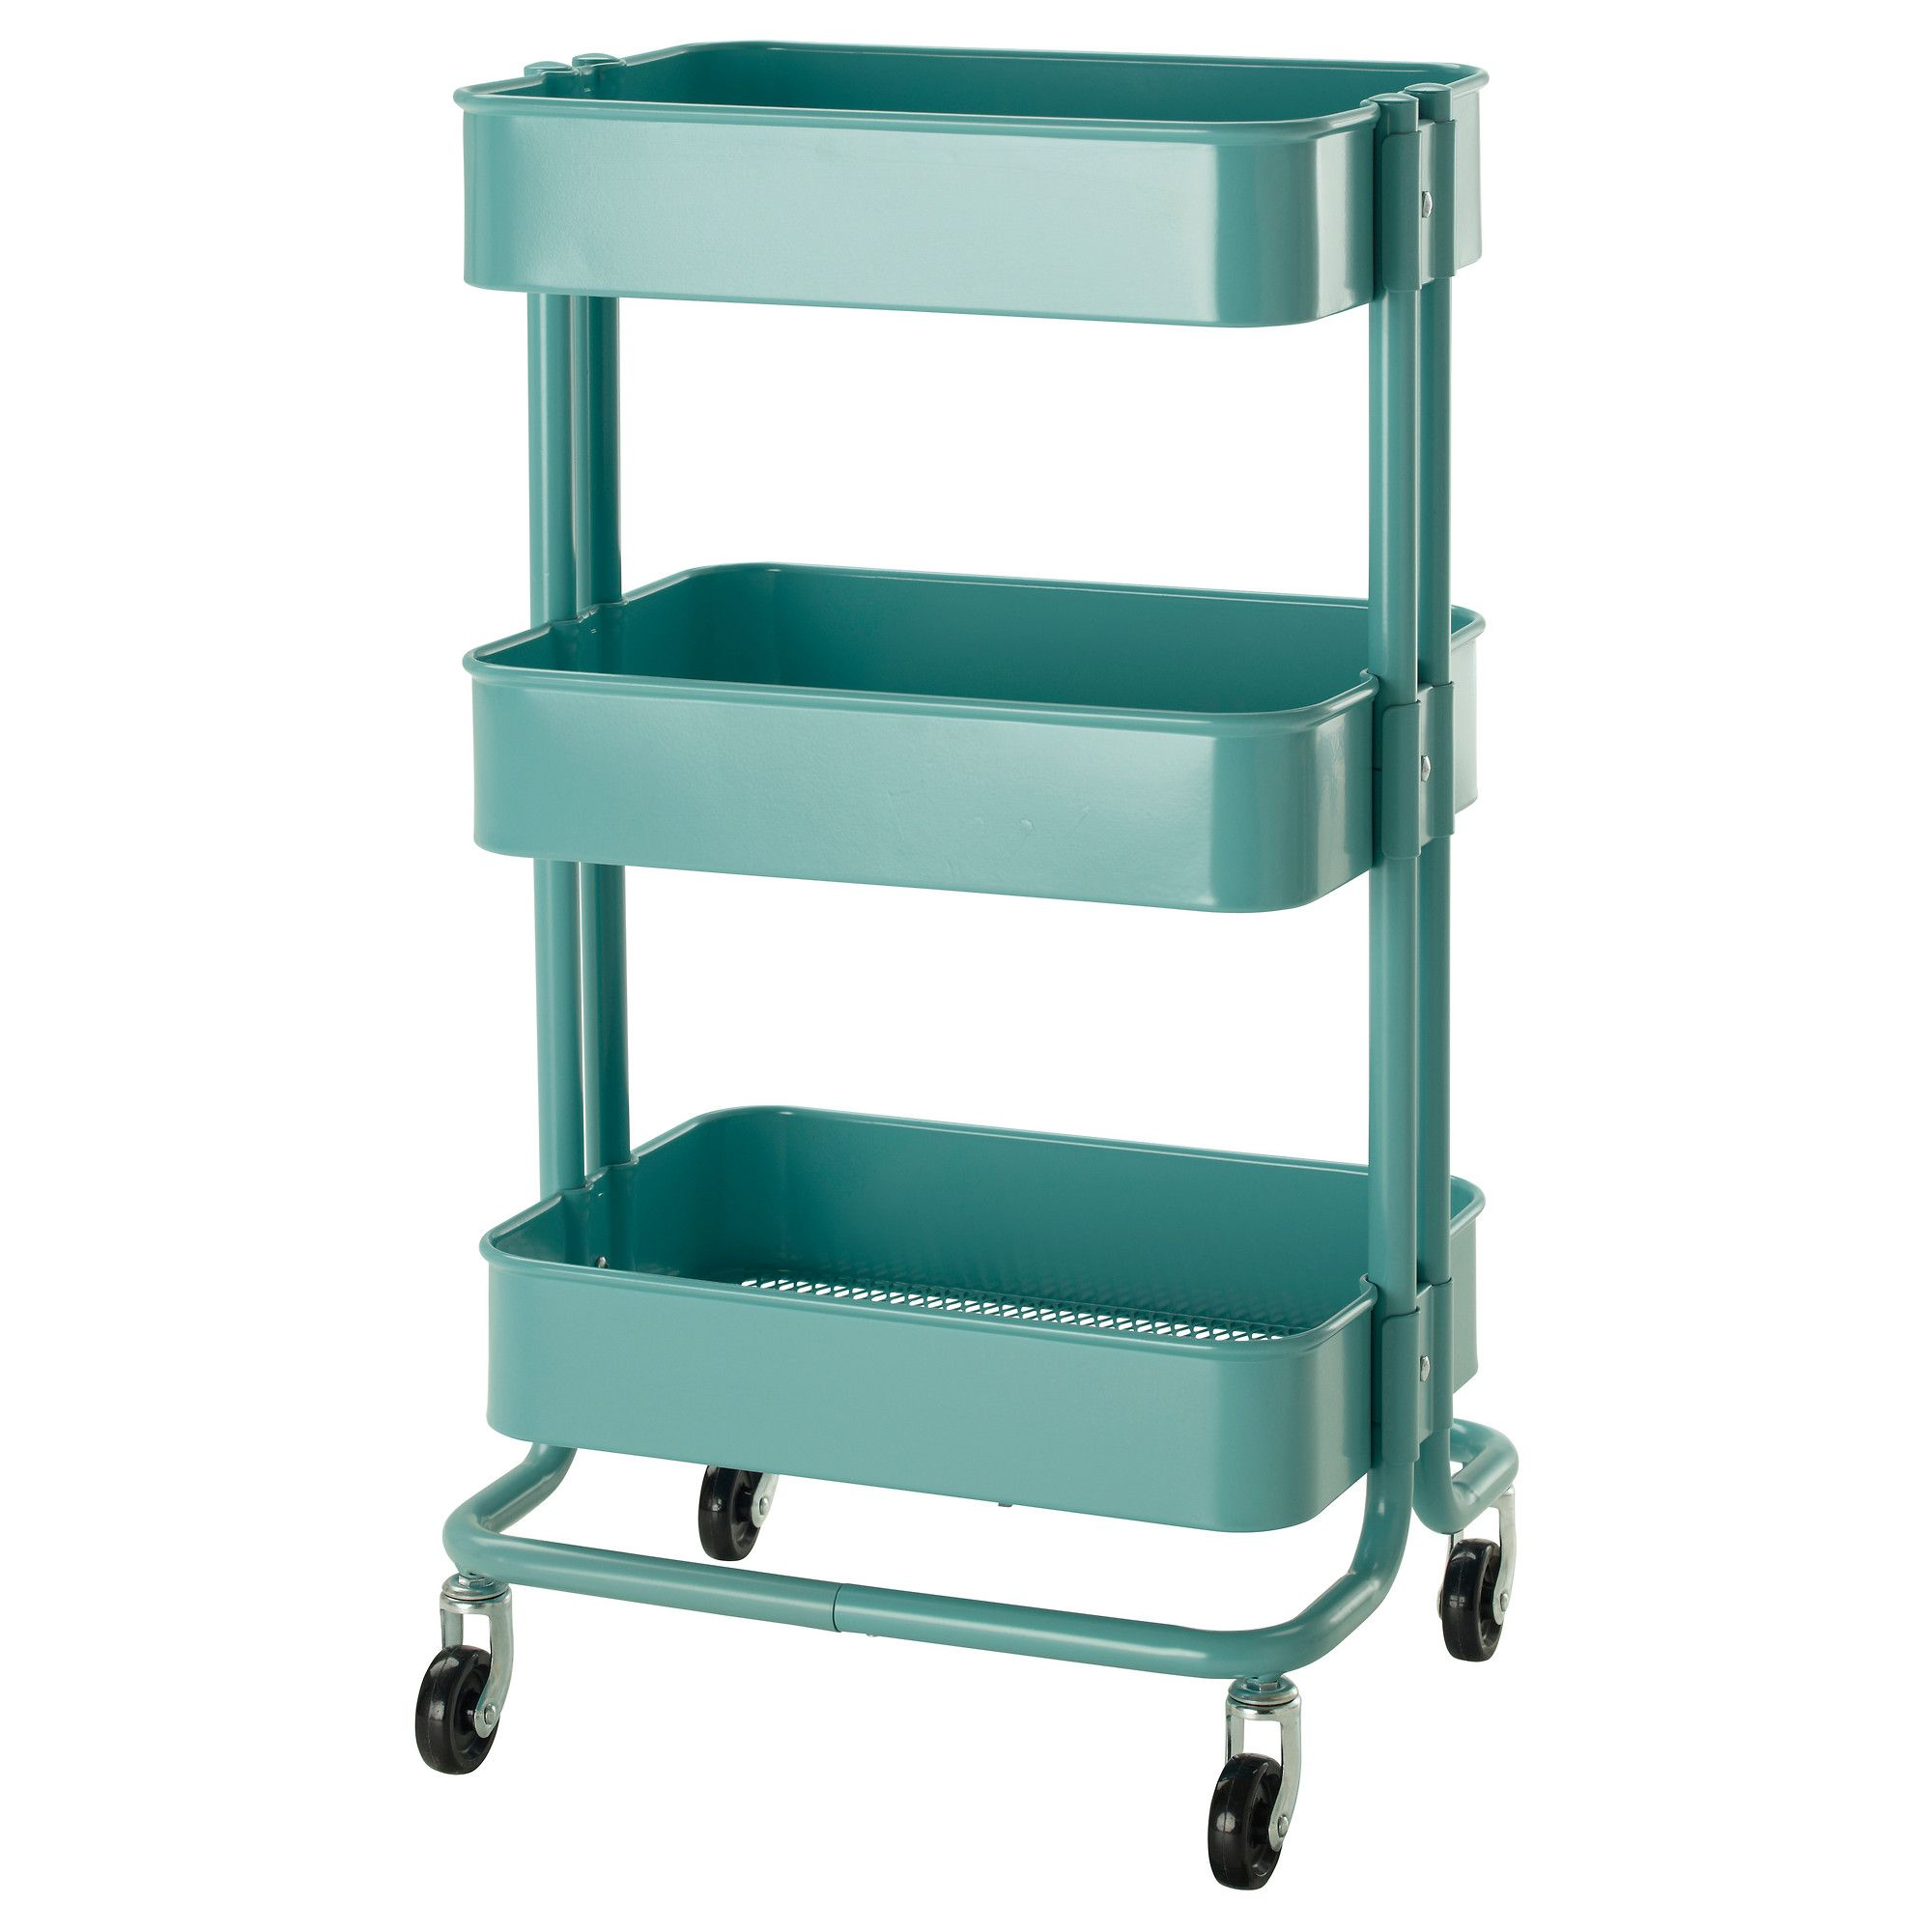 RÅSKOG Trolley, turquoise | Kitchen carts, Kitchens and Kitchen trolley